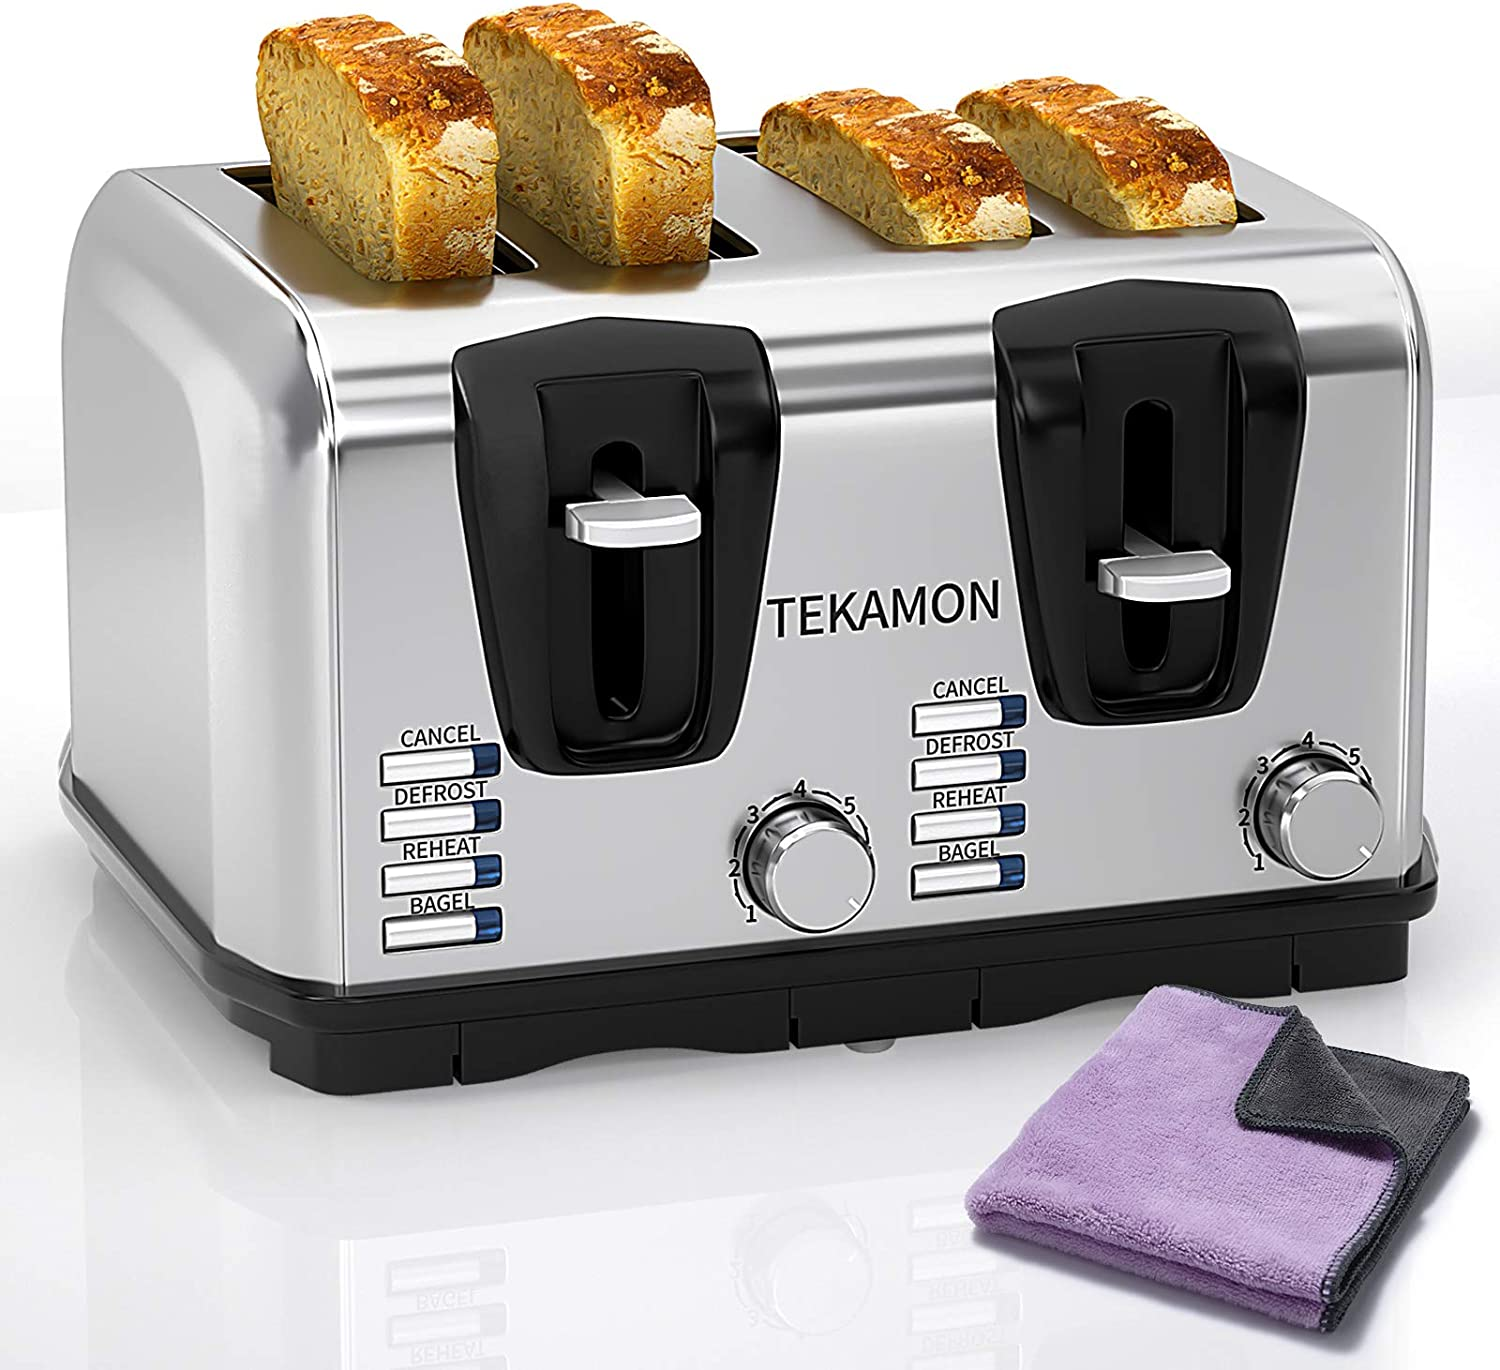 TEKAMON Toaster Slice 4 Classic Stainless Steel Toaster, Extra Wide Slots, 7 Bread Shade Settings, Bagel/Reheat/Defrost/Cancel Function, Removable Crumb Tray, Lavender Cleaning Cloth